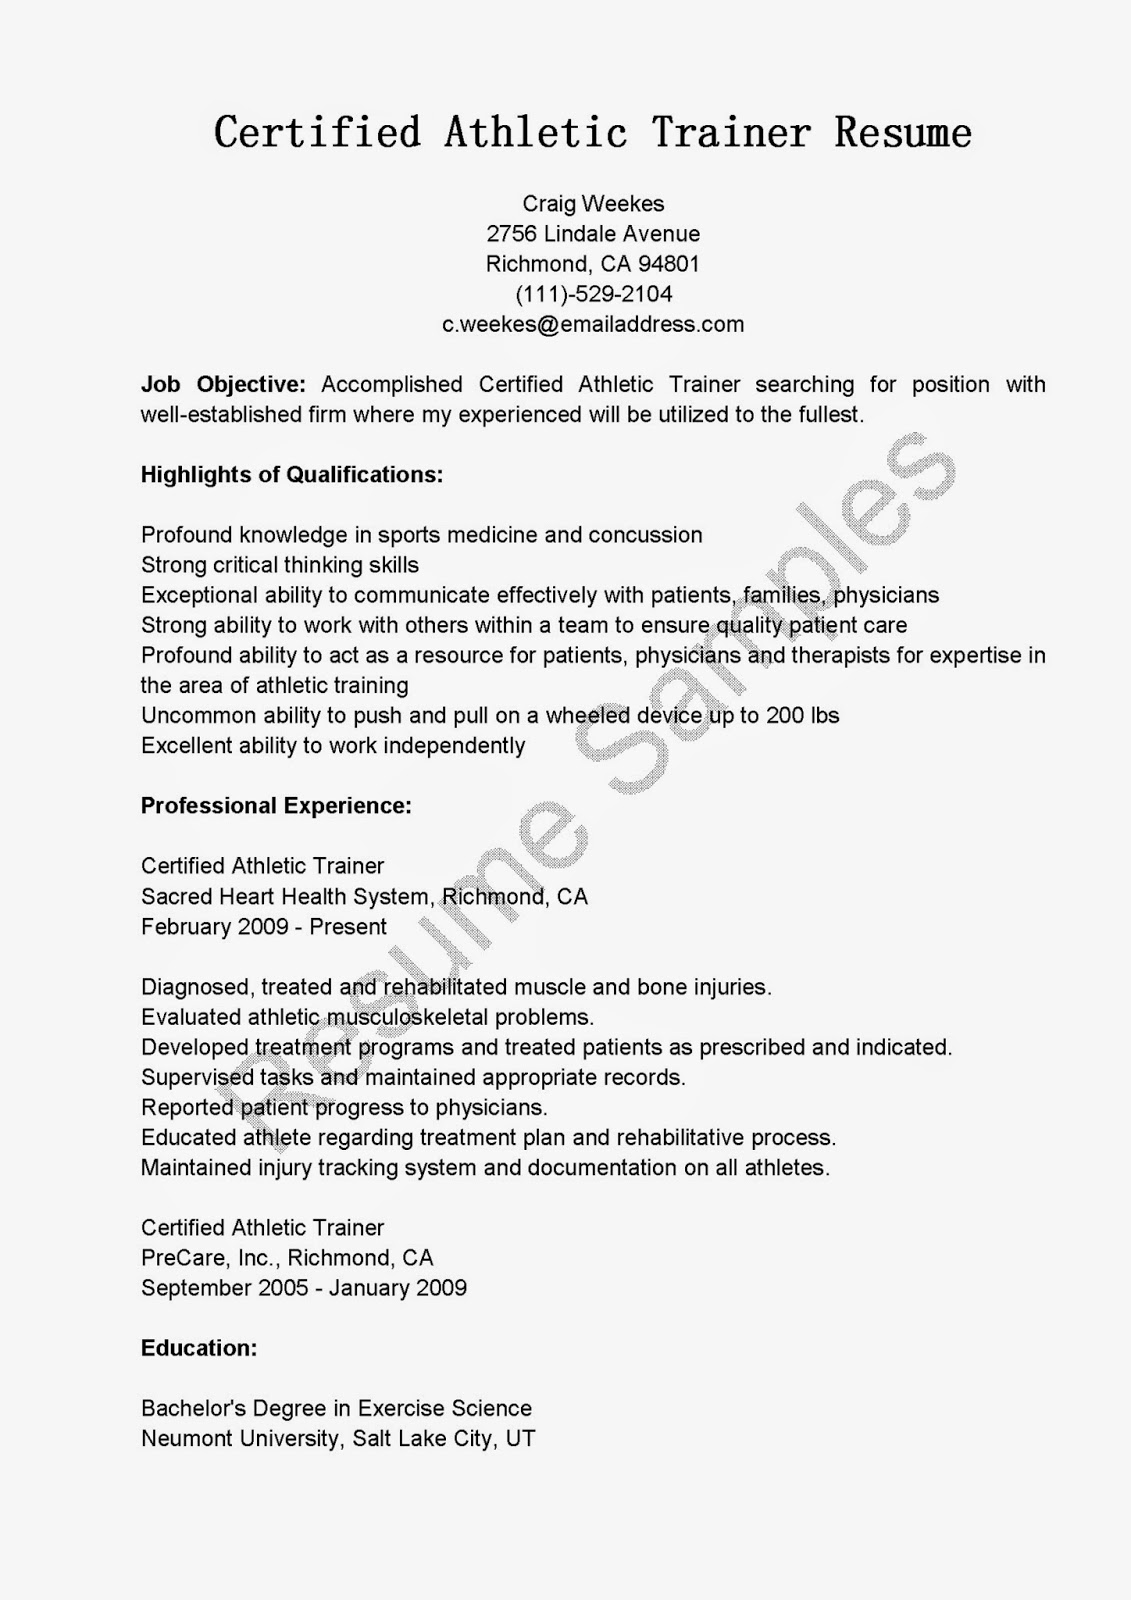 Sample Cover Letter For Athletic Trainer Job Application  Ecza